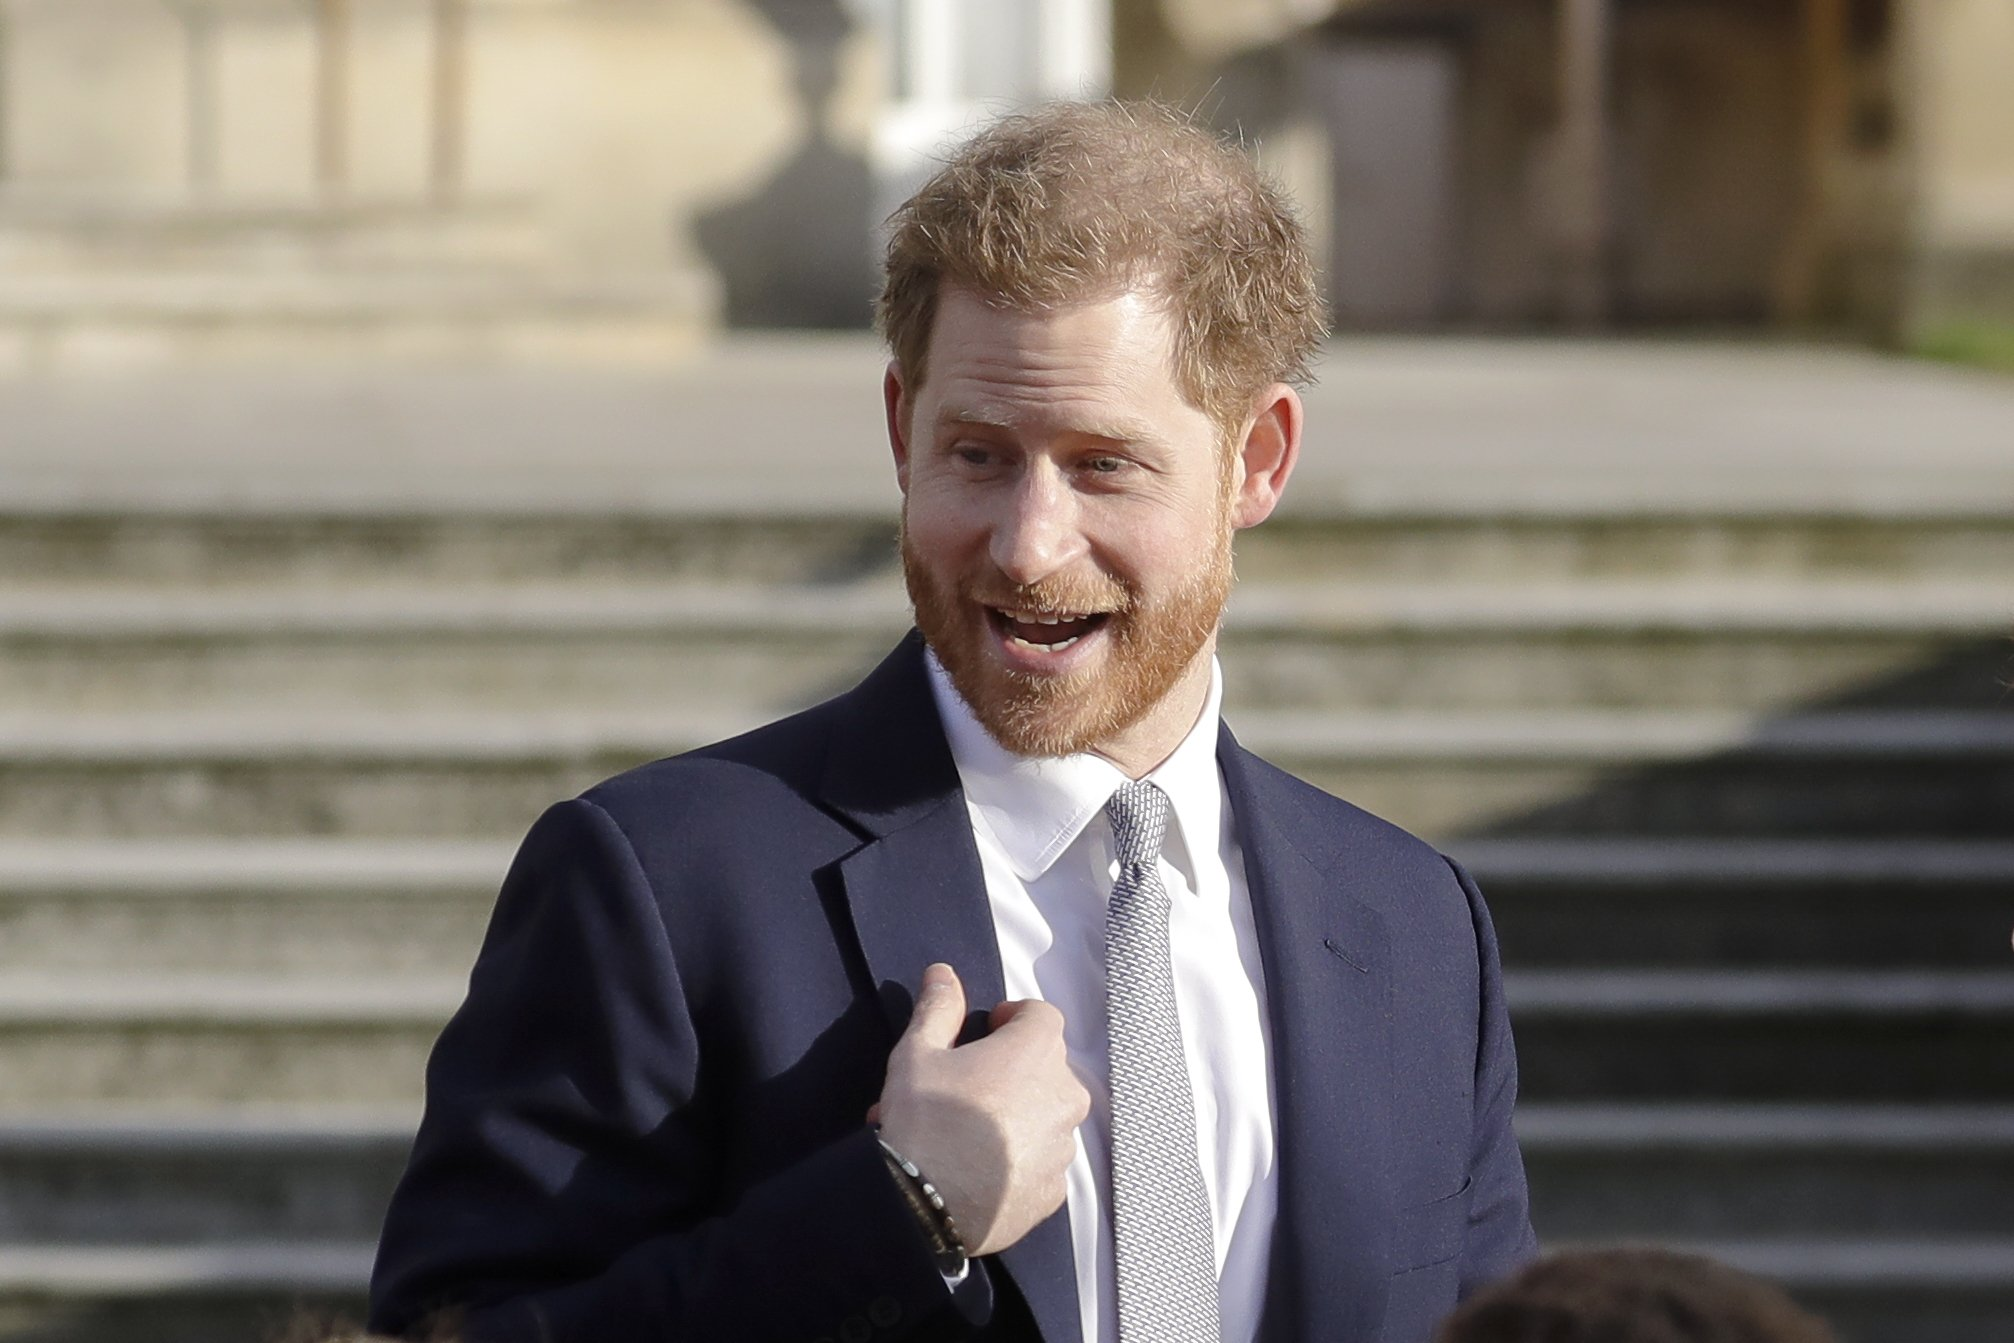 Prince Harry raps 'Fresh Prince,' says he didn't walk away - Associated Press